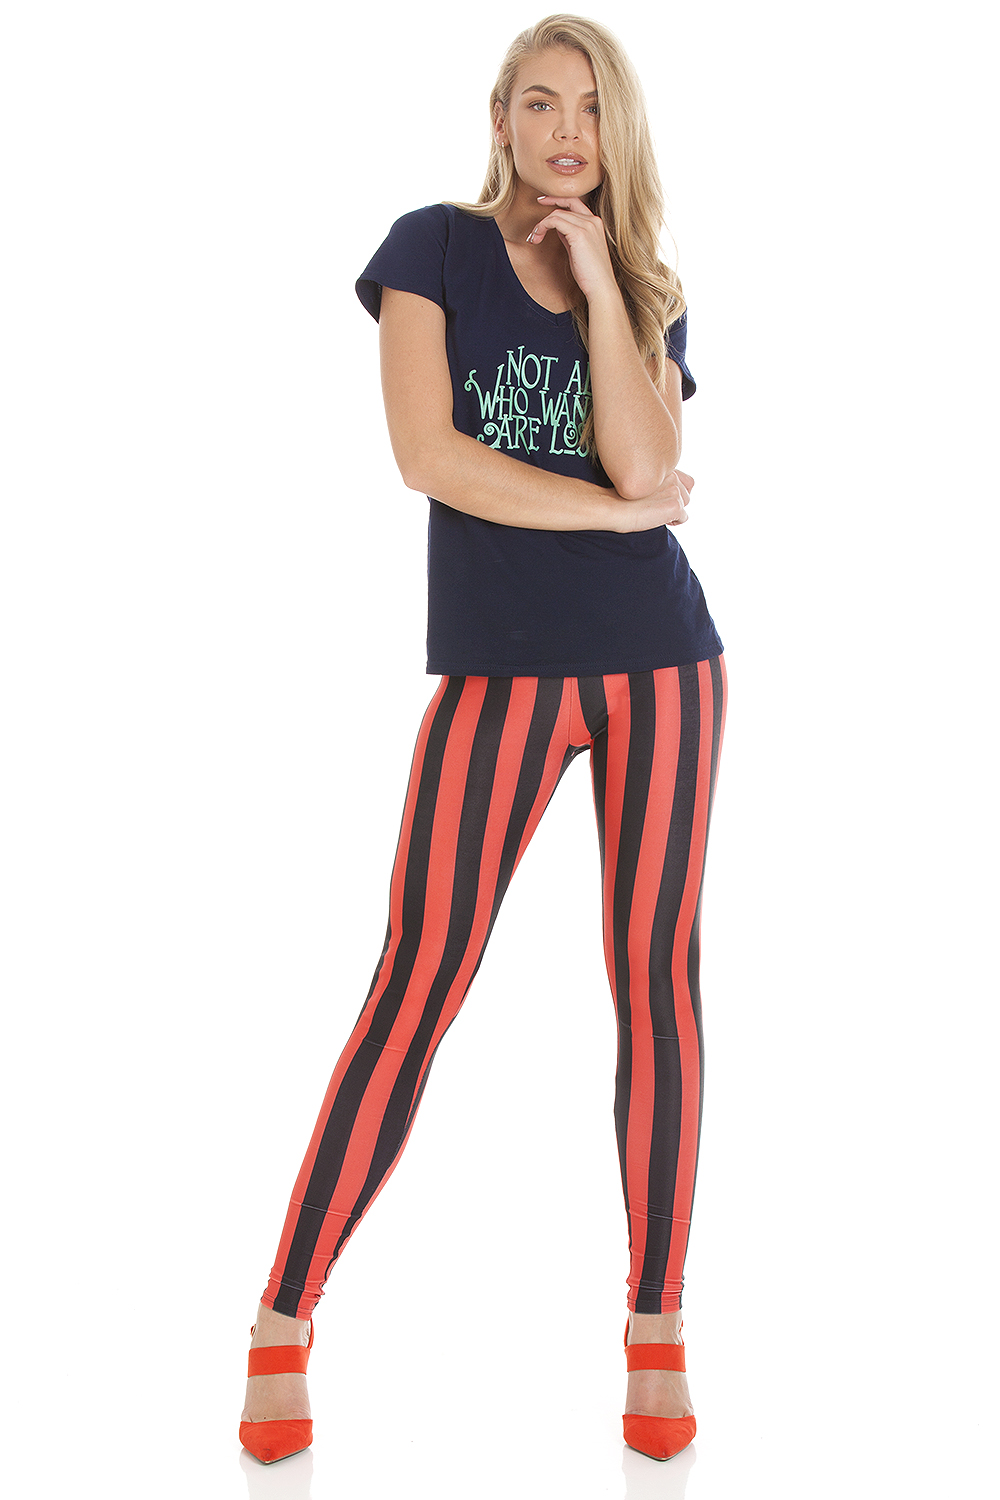 Commercial photography on amazon white background photoshoot photography of womens striped leggings red for ecommerce shop